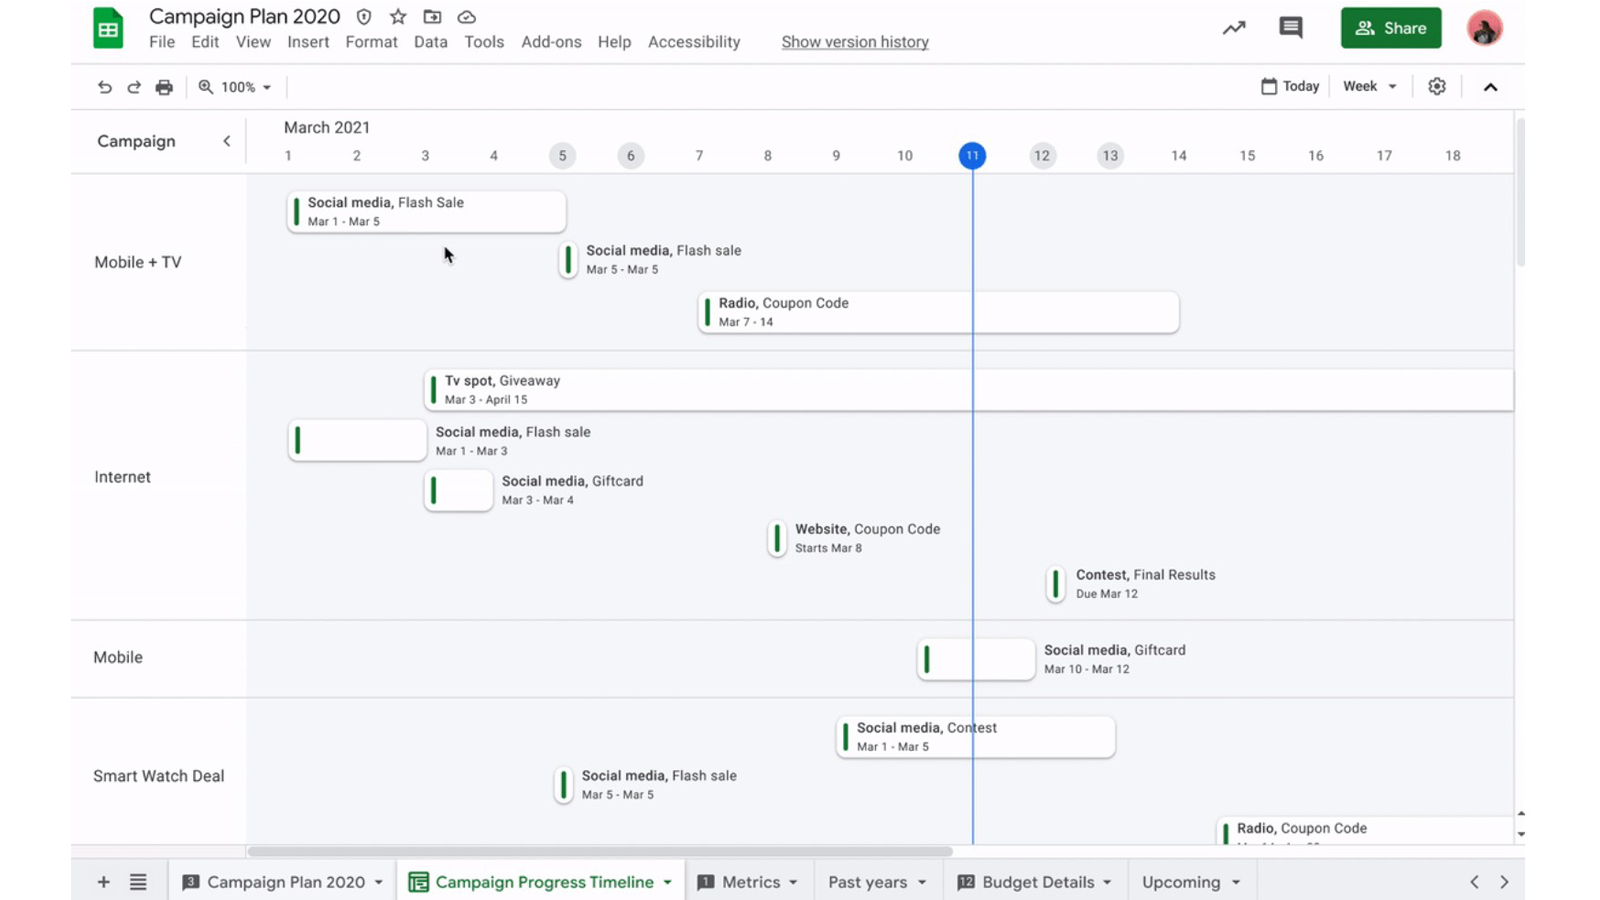 Timeline view in Sheets